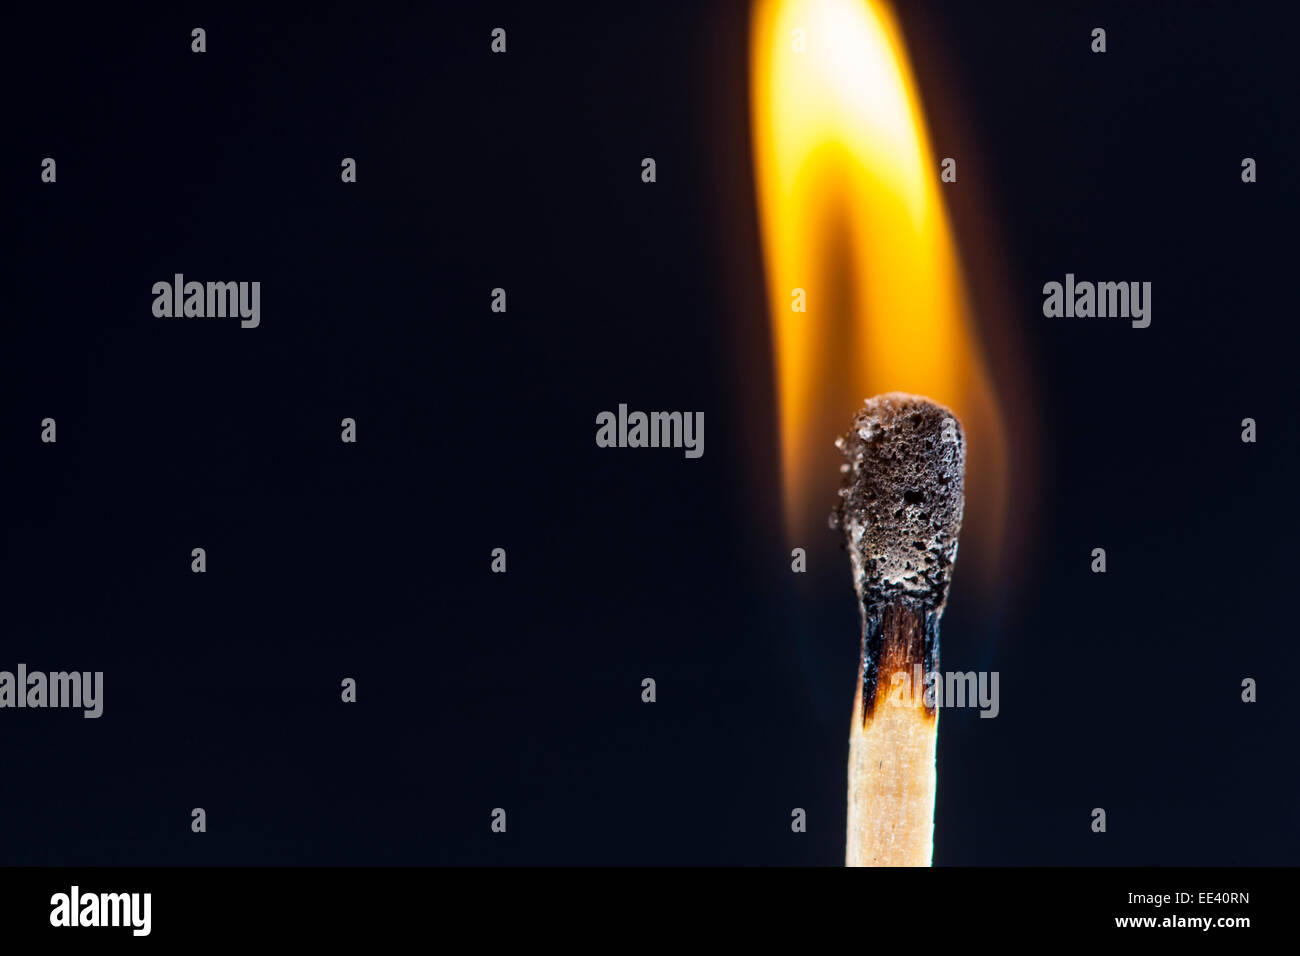 Match, just ignited flame at the match head, - Stock Image